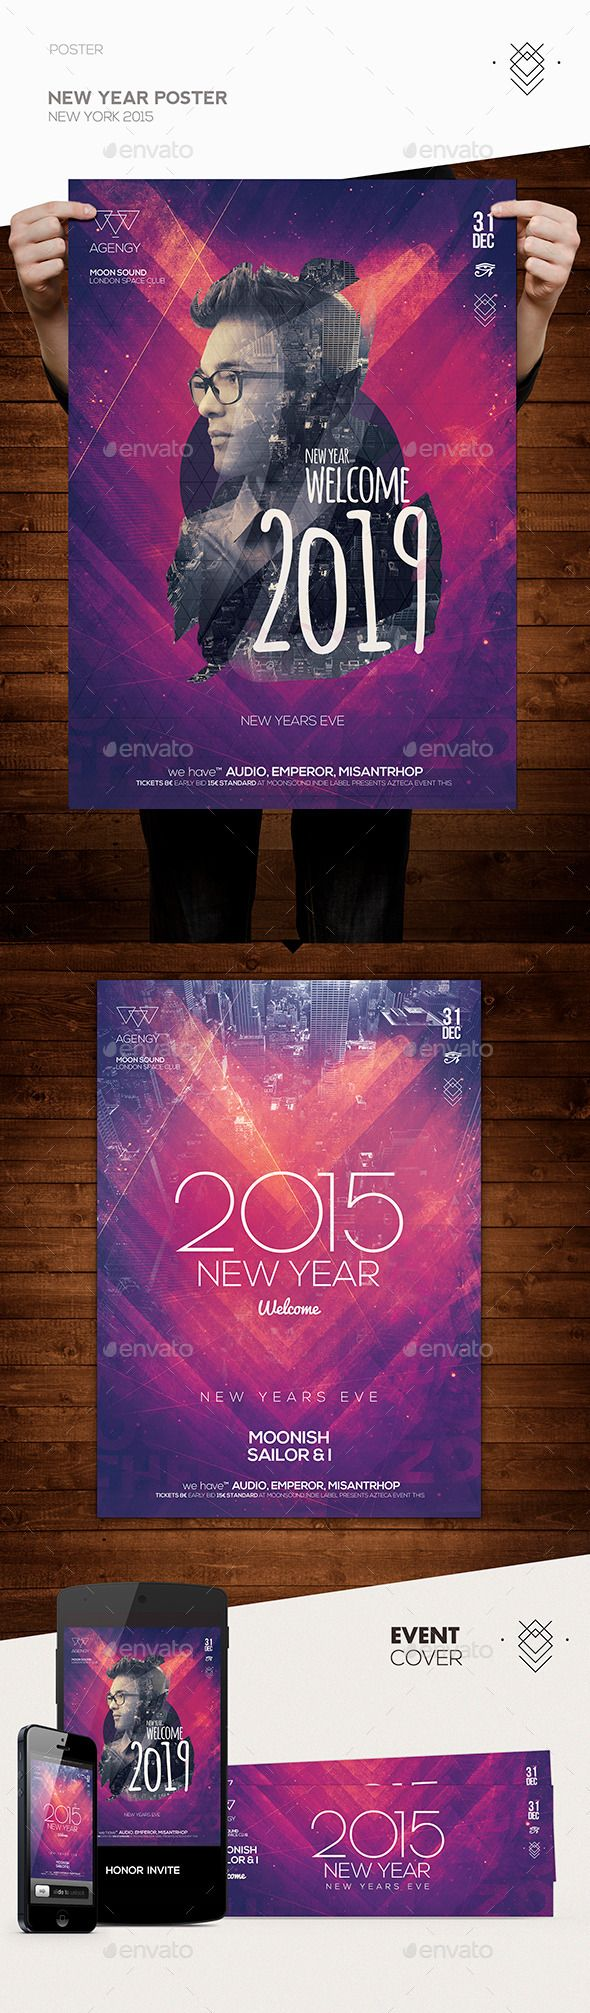 New Year Poster Flyer Template PSD #design #nye Download: http://graphicriver.net/item/new-year-poster-flyer/9834160?ref=ksioks